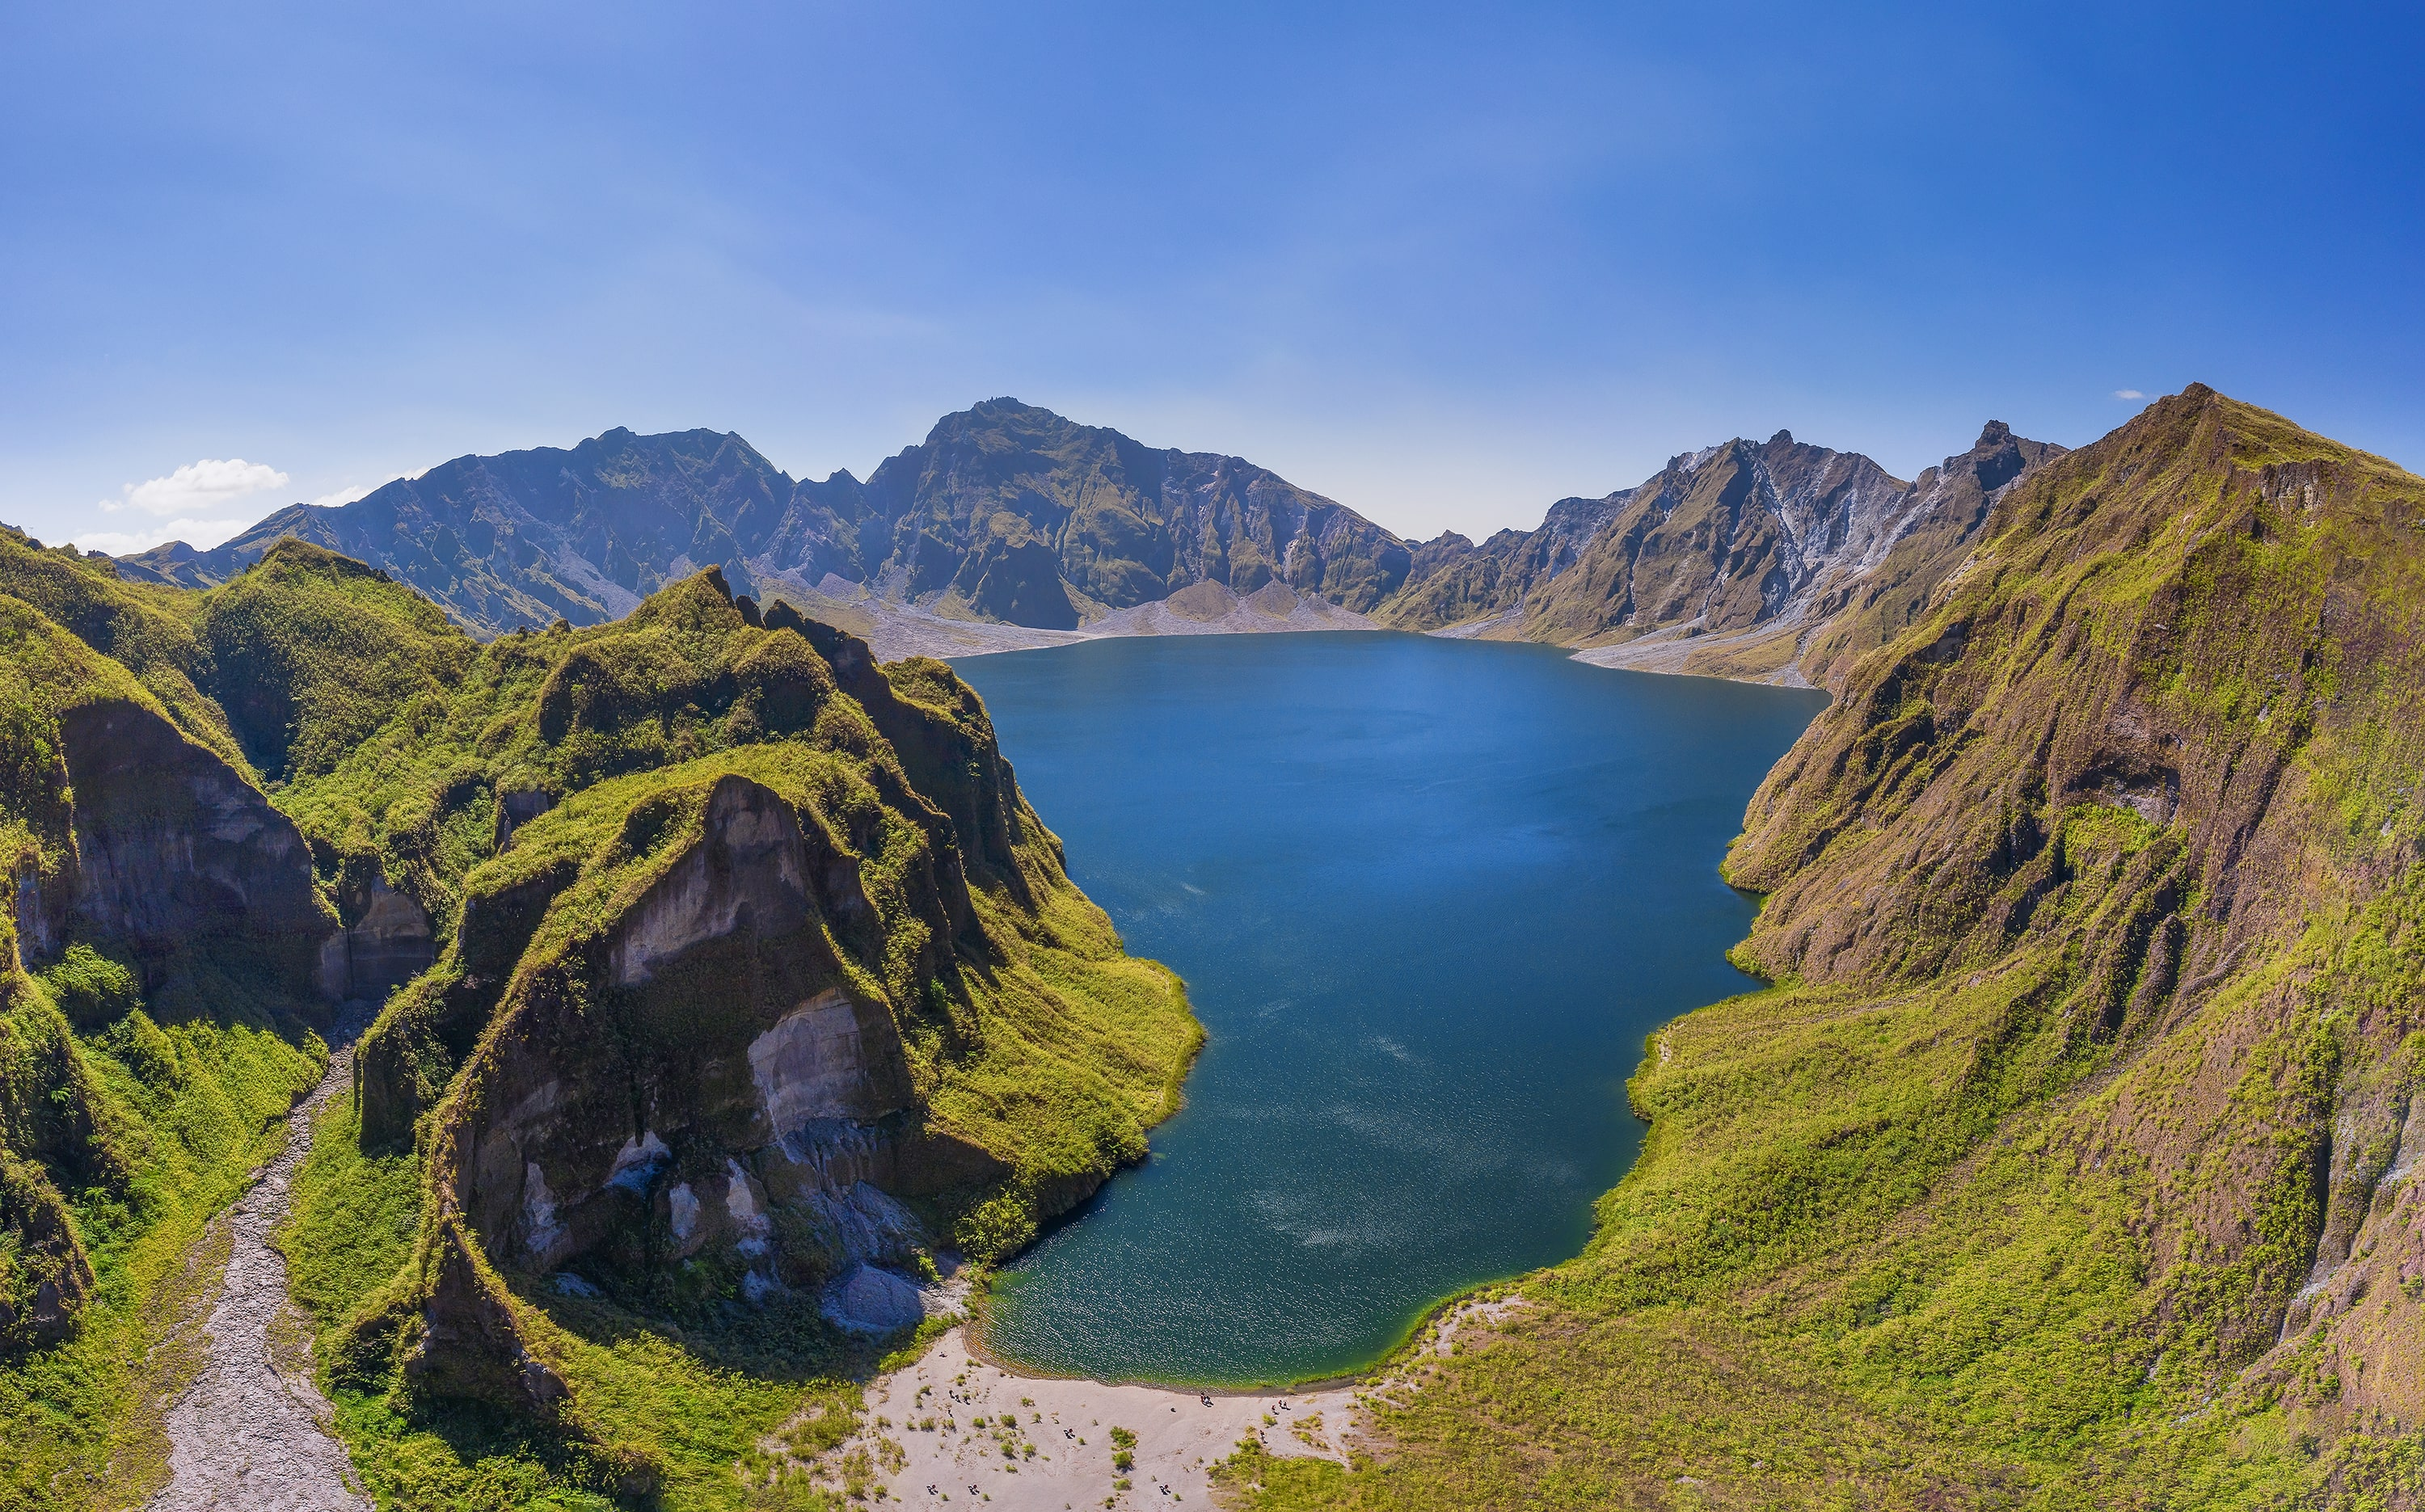 Aerial shot of the stunning landscape of Mt. Pinatubo Crater Lake